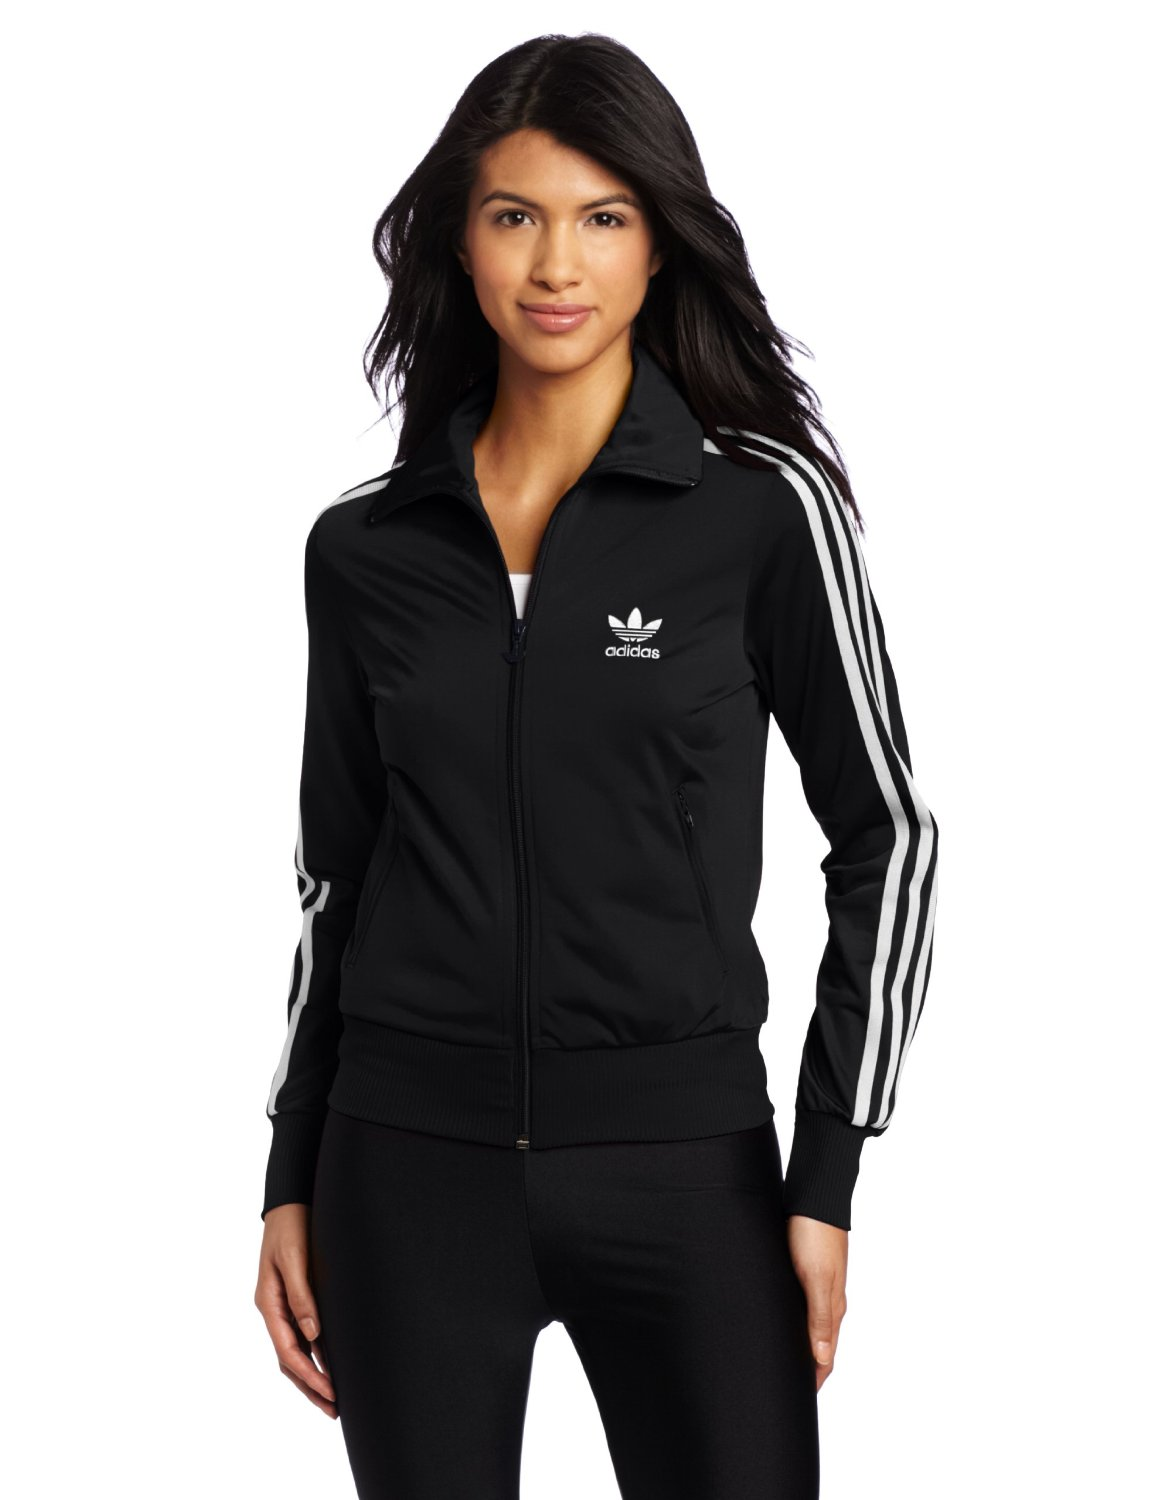 Amazon.com: adidas women's firebird track top: sports & outdoors